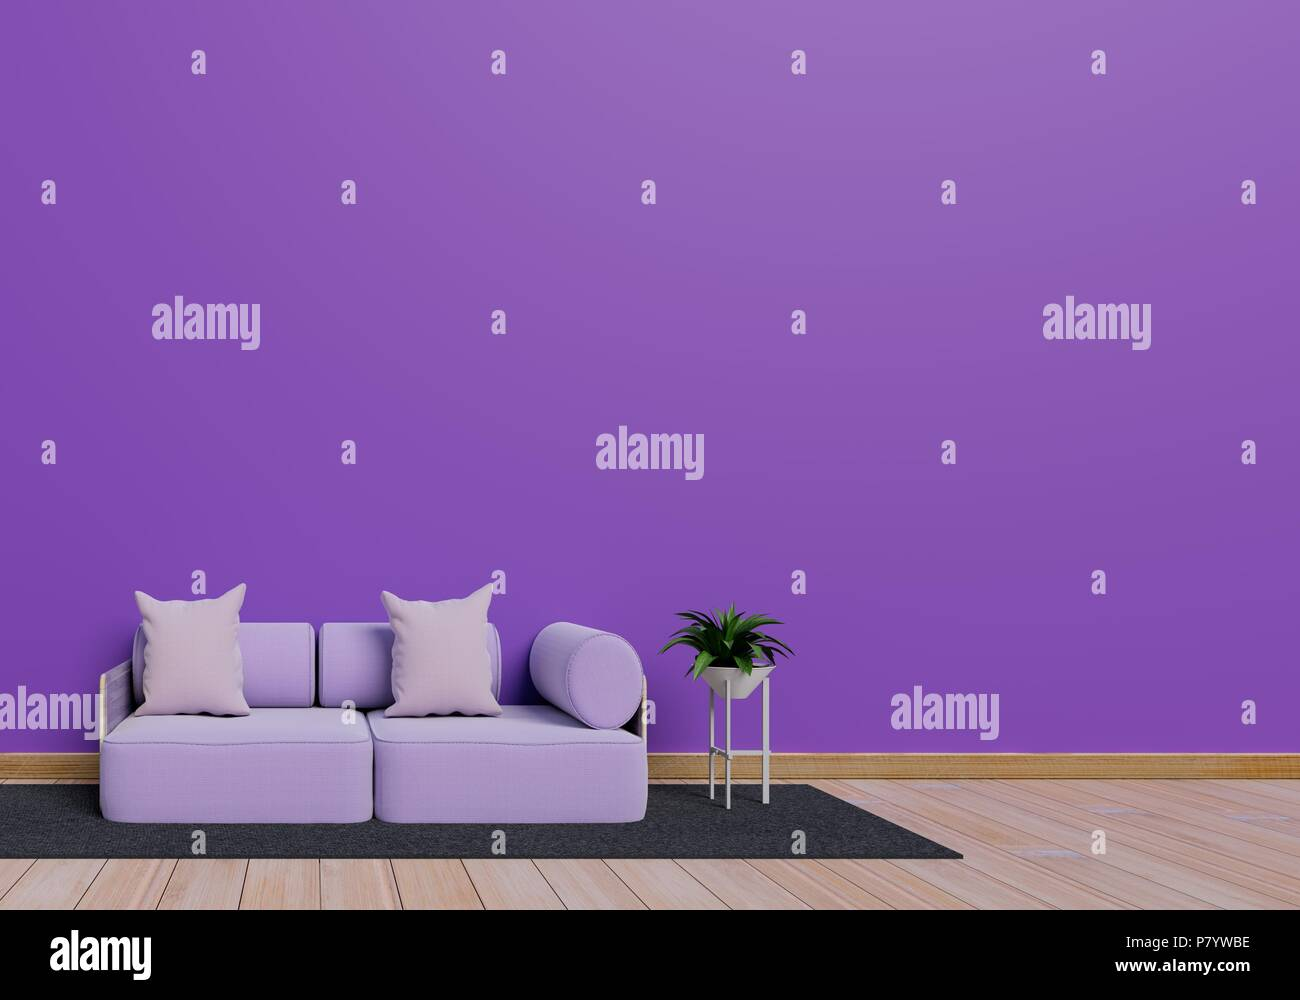 Modern interior design of purple living room with sofa and plant pot on brown glossy wooden floor. Grey mat element. Home and Living concept. Lifestyl - Stock Image